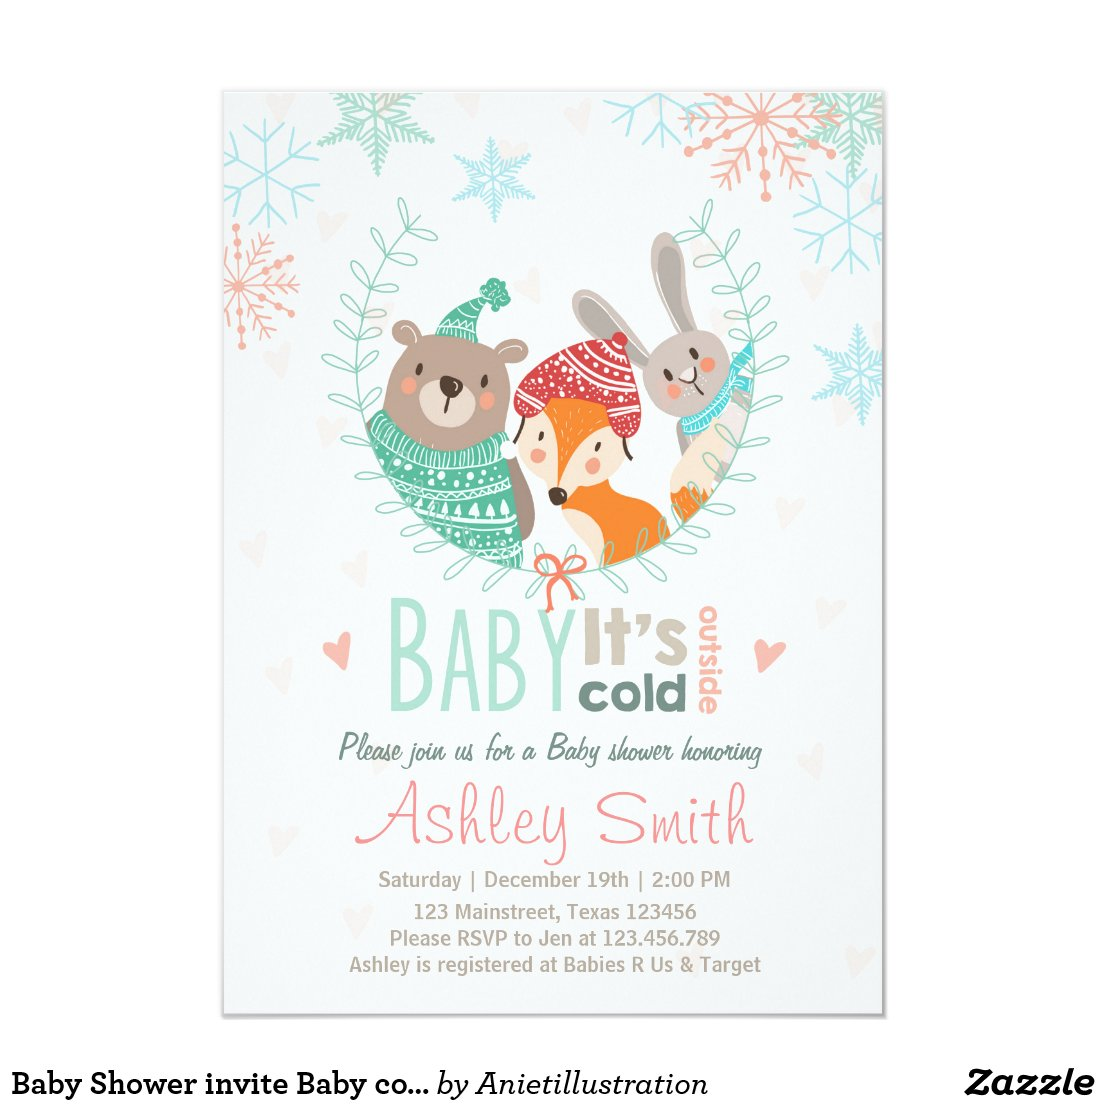 Baby Shower invite Baby cold Outside woodland